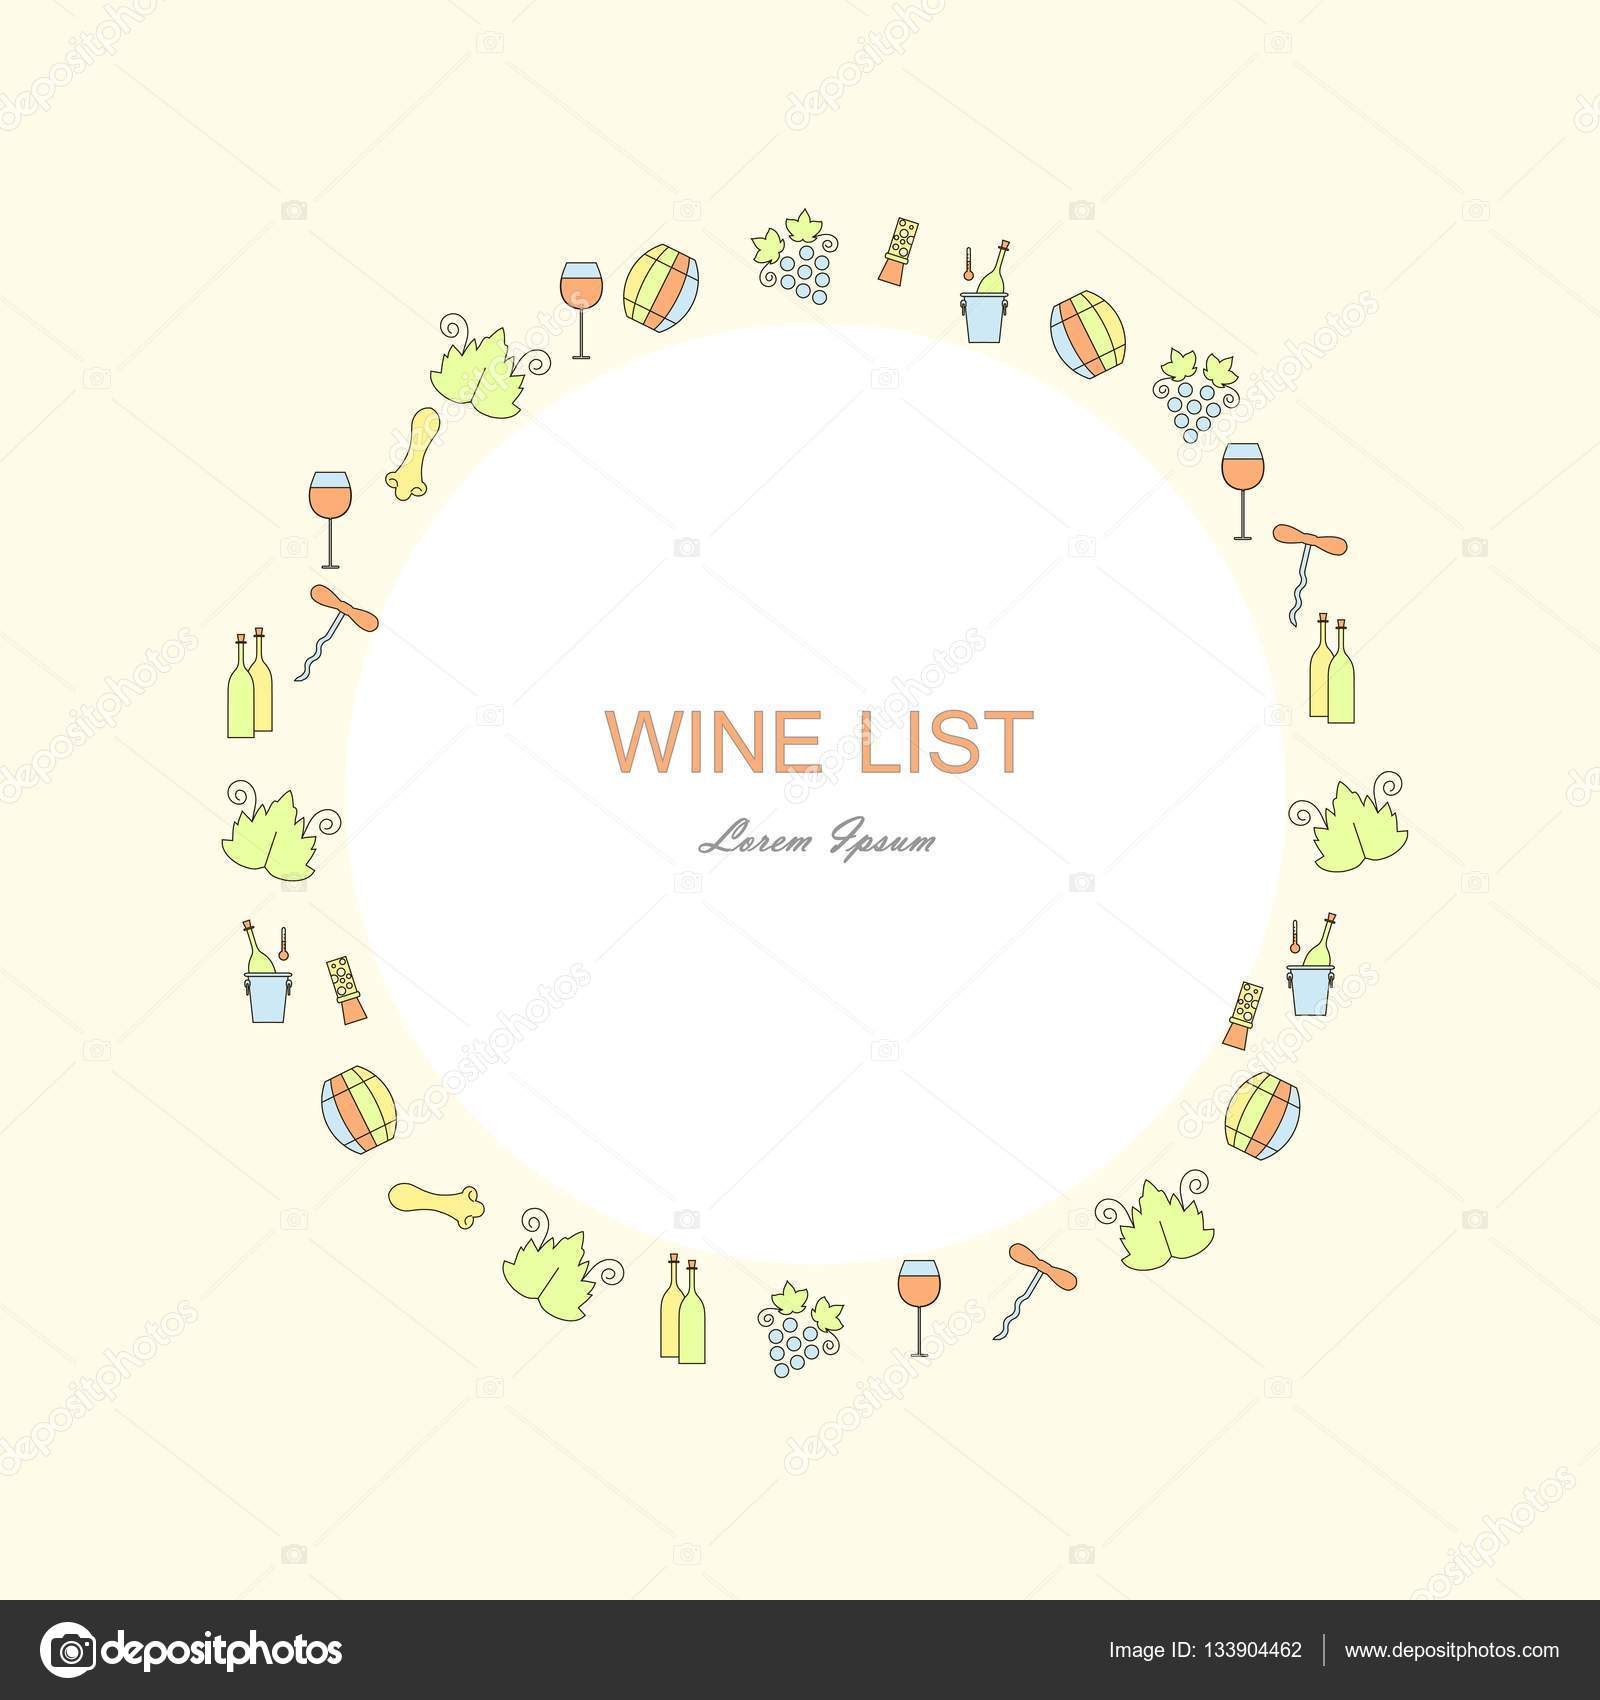 Wine list restaurant menu template line style green blue red wine list restaurant menu template line style green blue red yellow icons pronofoot35fo Gallery